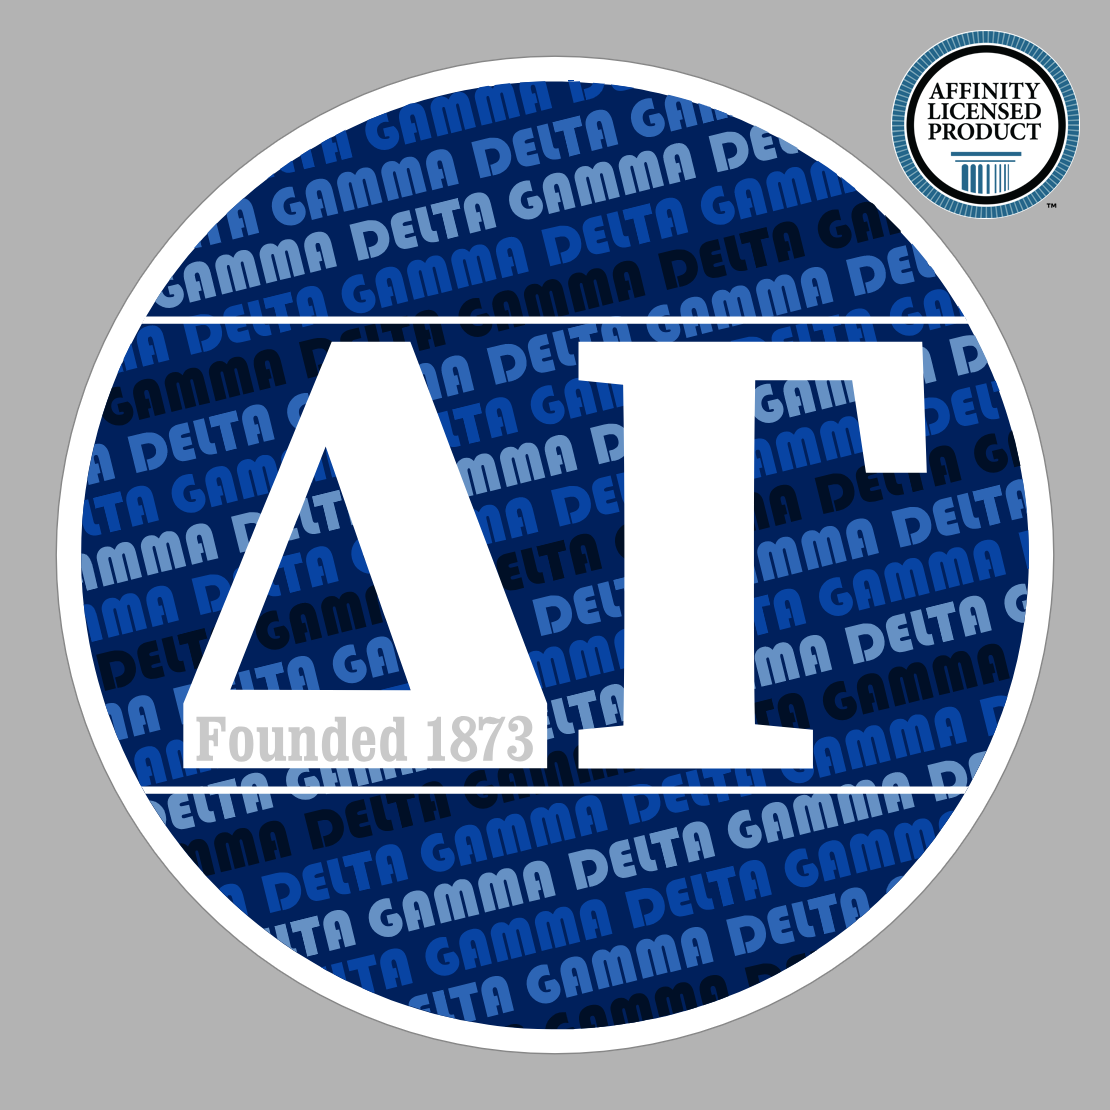 Delta Gamma Blue Founded Letters Sticker Letter Stickers Sorority Stickers Sorority And Fraternity [ 1110 x 1110 Pixel ]